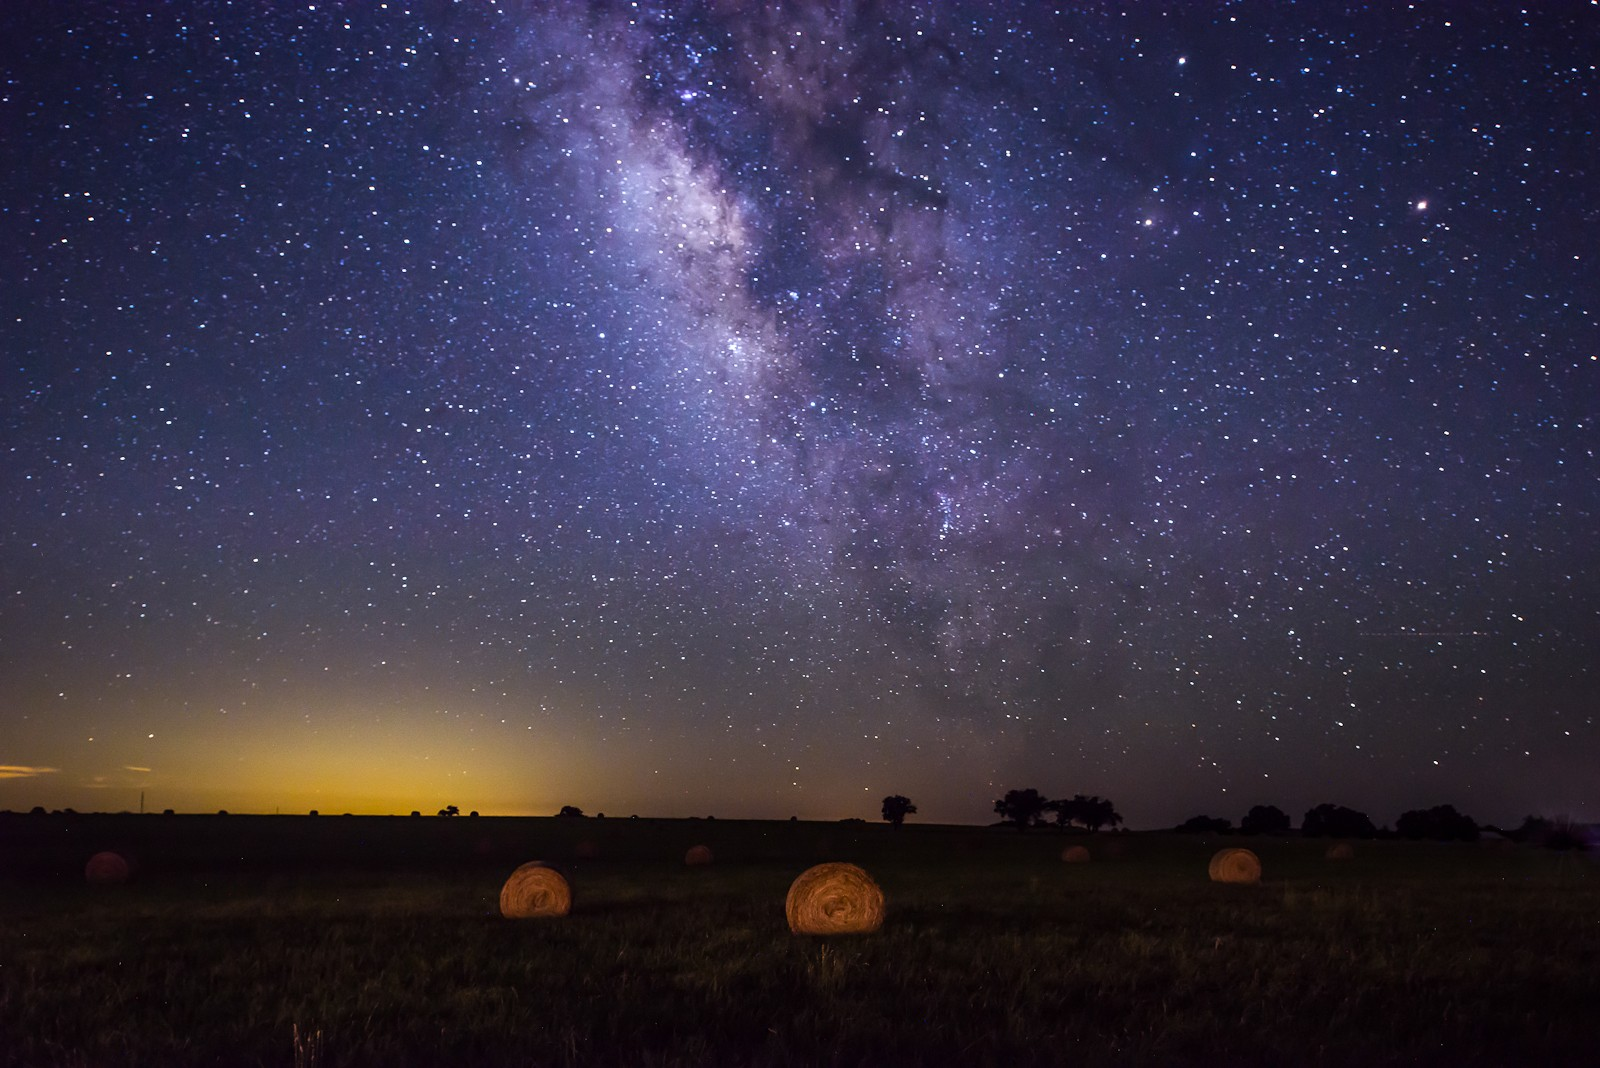 Milky Way Over The Hay Bails.